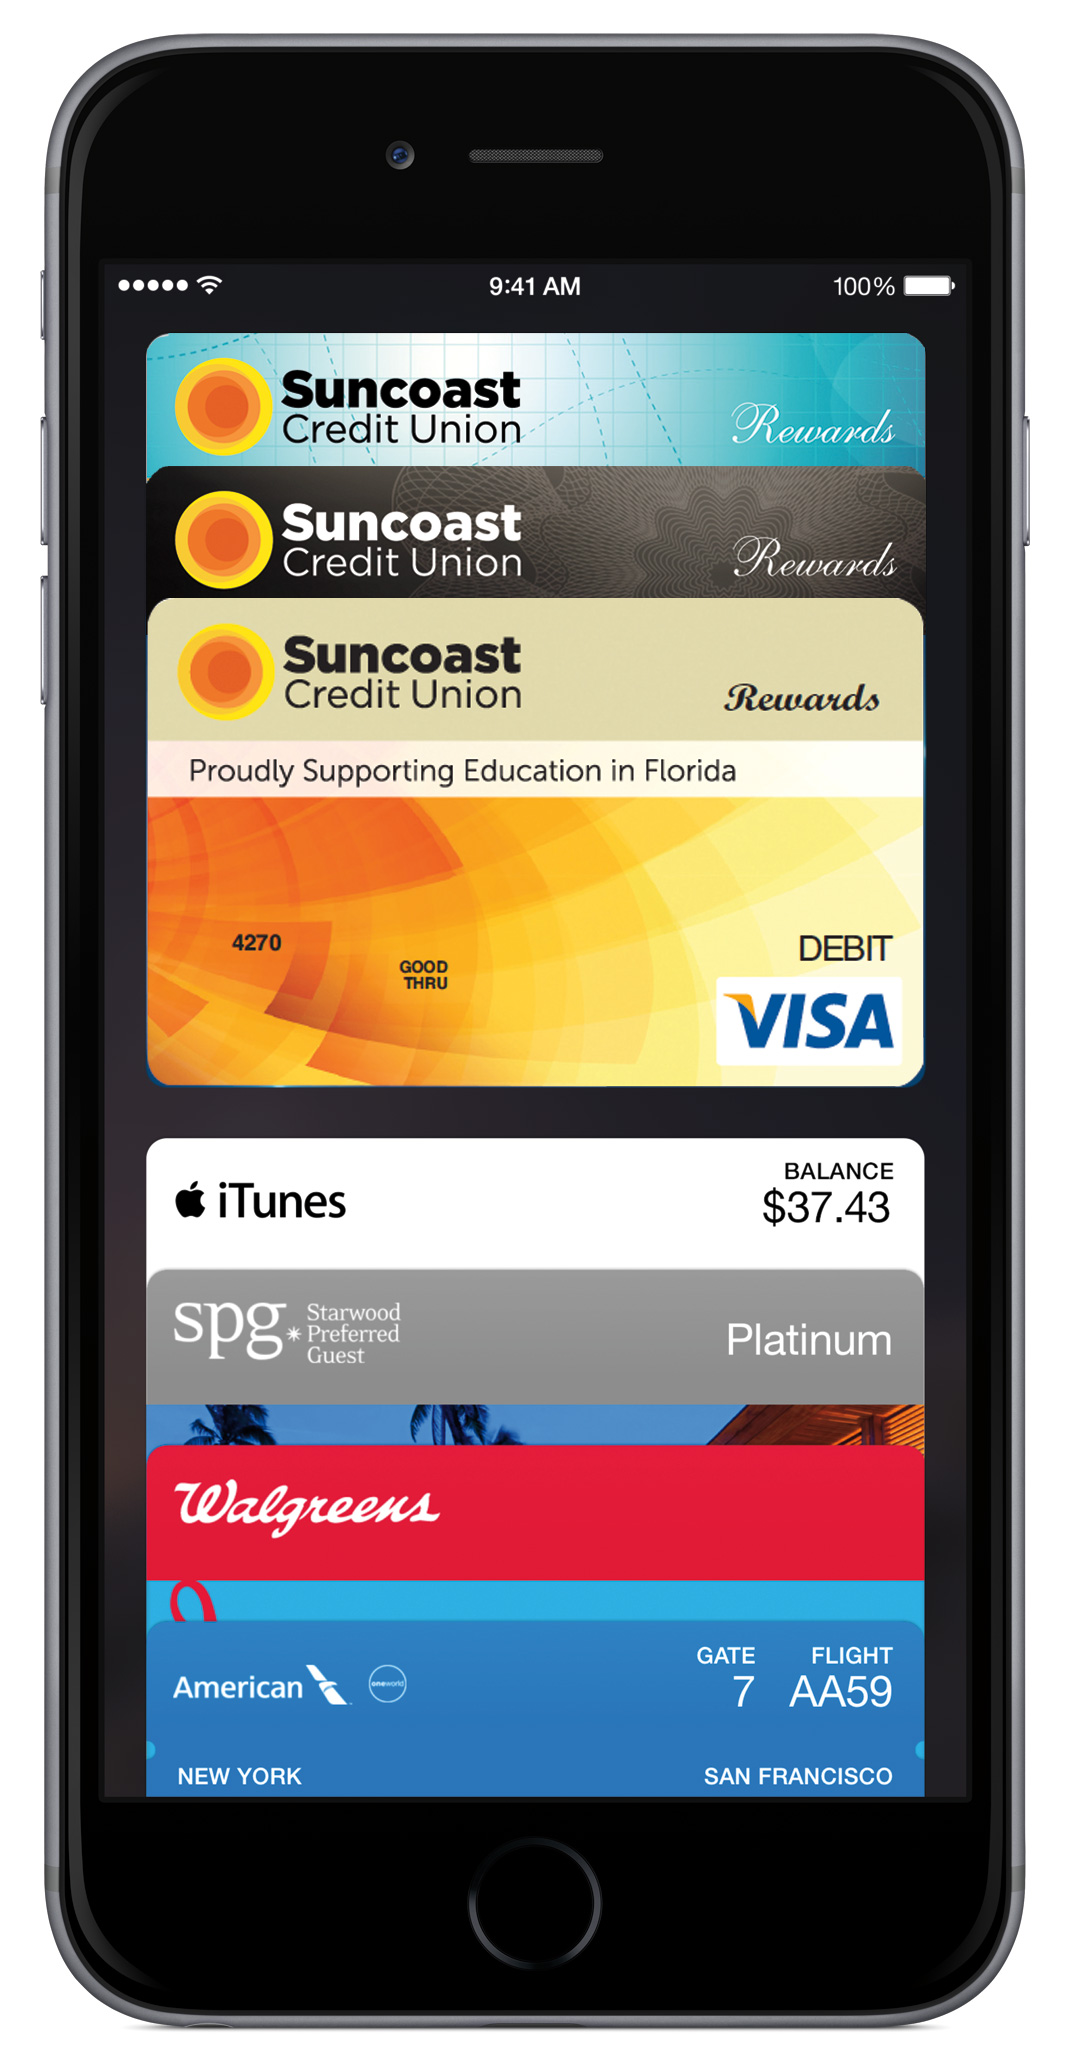 Add Suncoast cards to Passbook